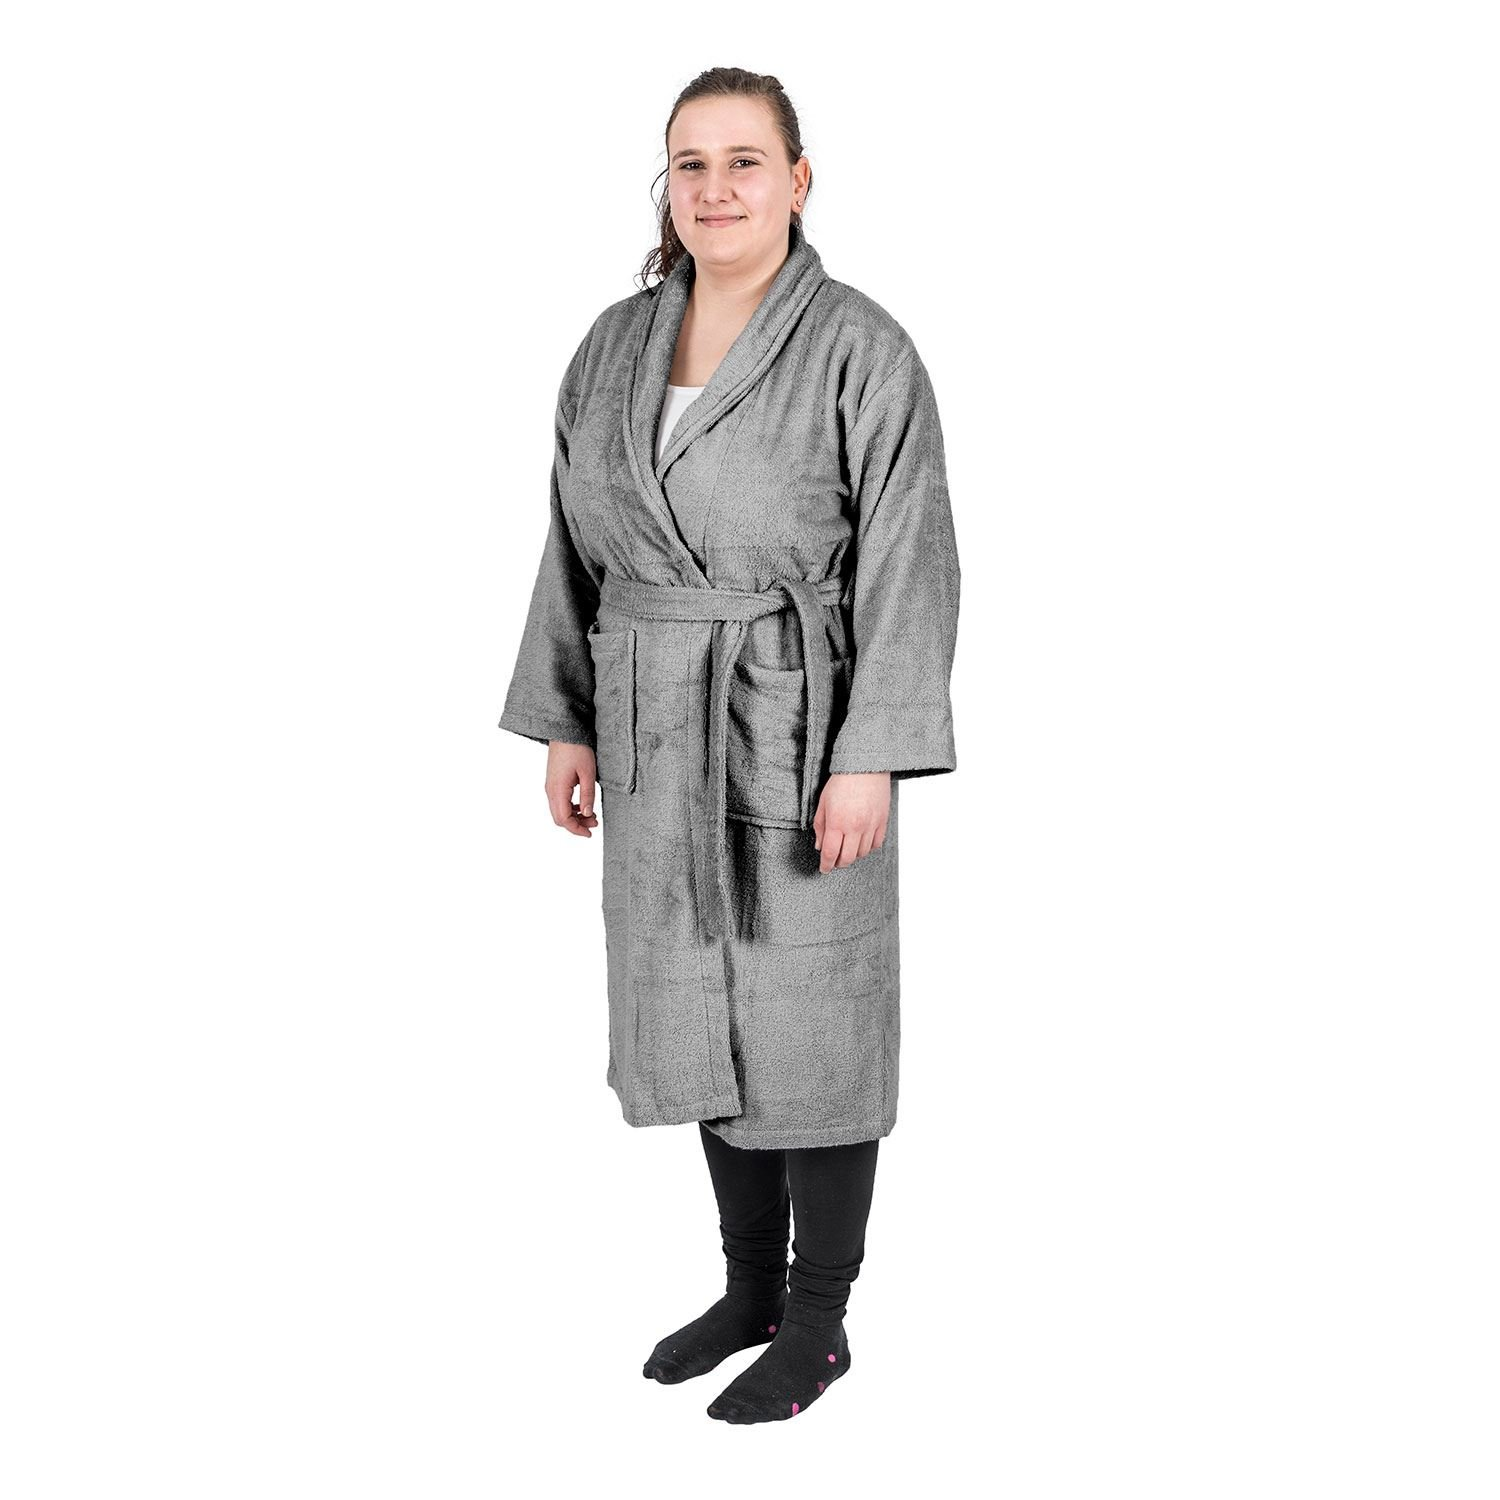 Homescapes Charcoal Grey Adults Dressing Gown with Shawl Collar 100% Egyptian  Cotton Terry Towelling Unisex Bathrobe c53a8d630